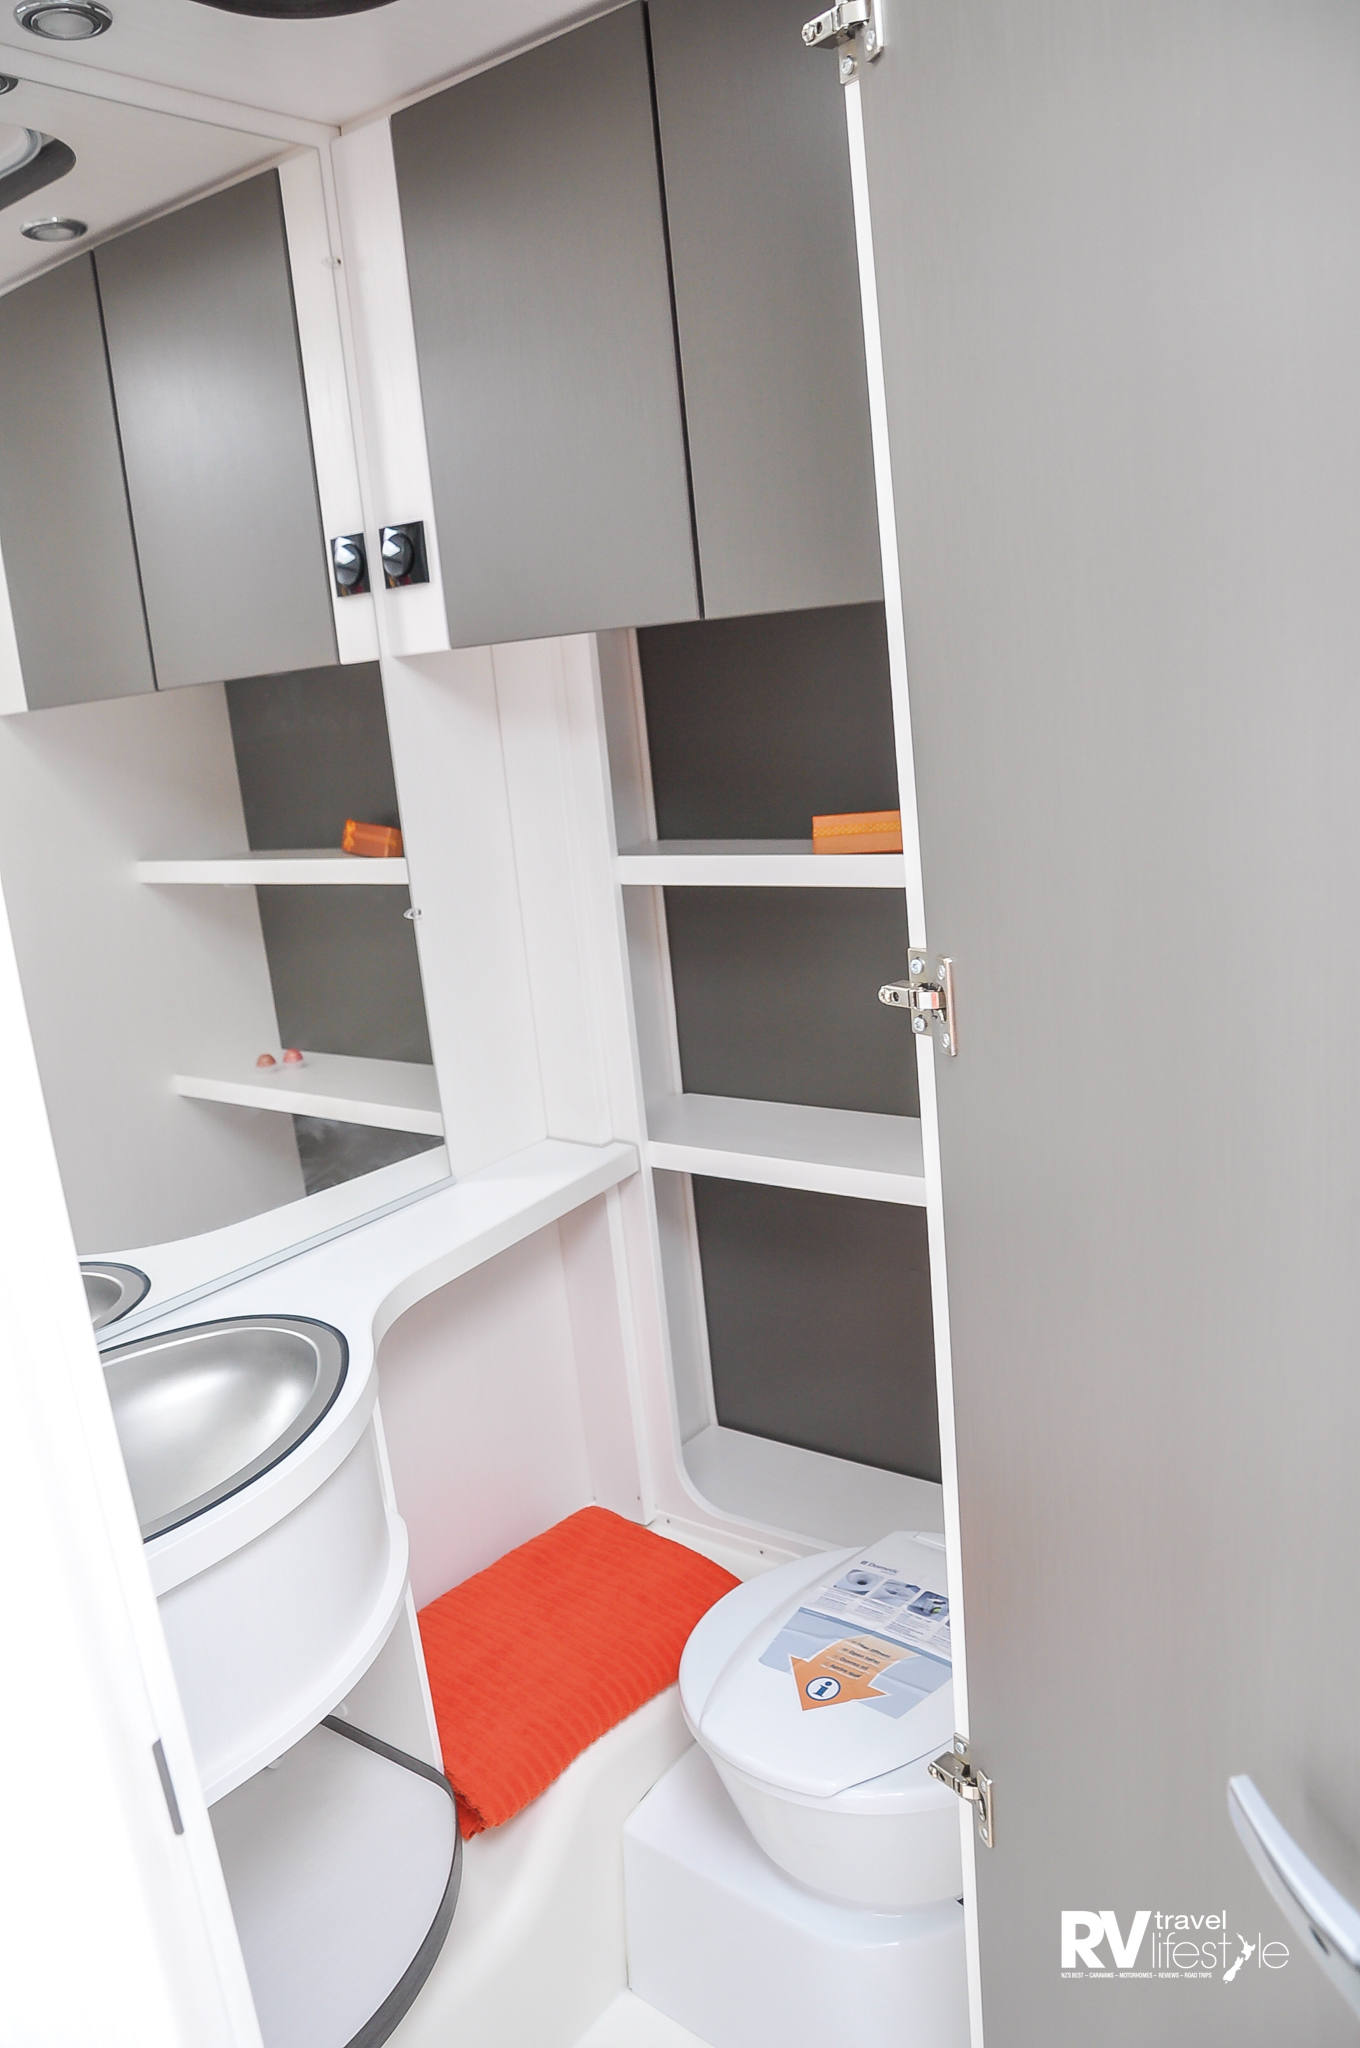 C'Go 430QS - this bathroom is bigger than our RnR motorhome bathroom, and has shelves and cupboards for storage - really nice space